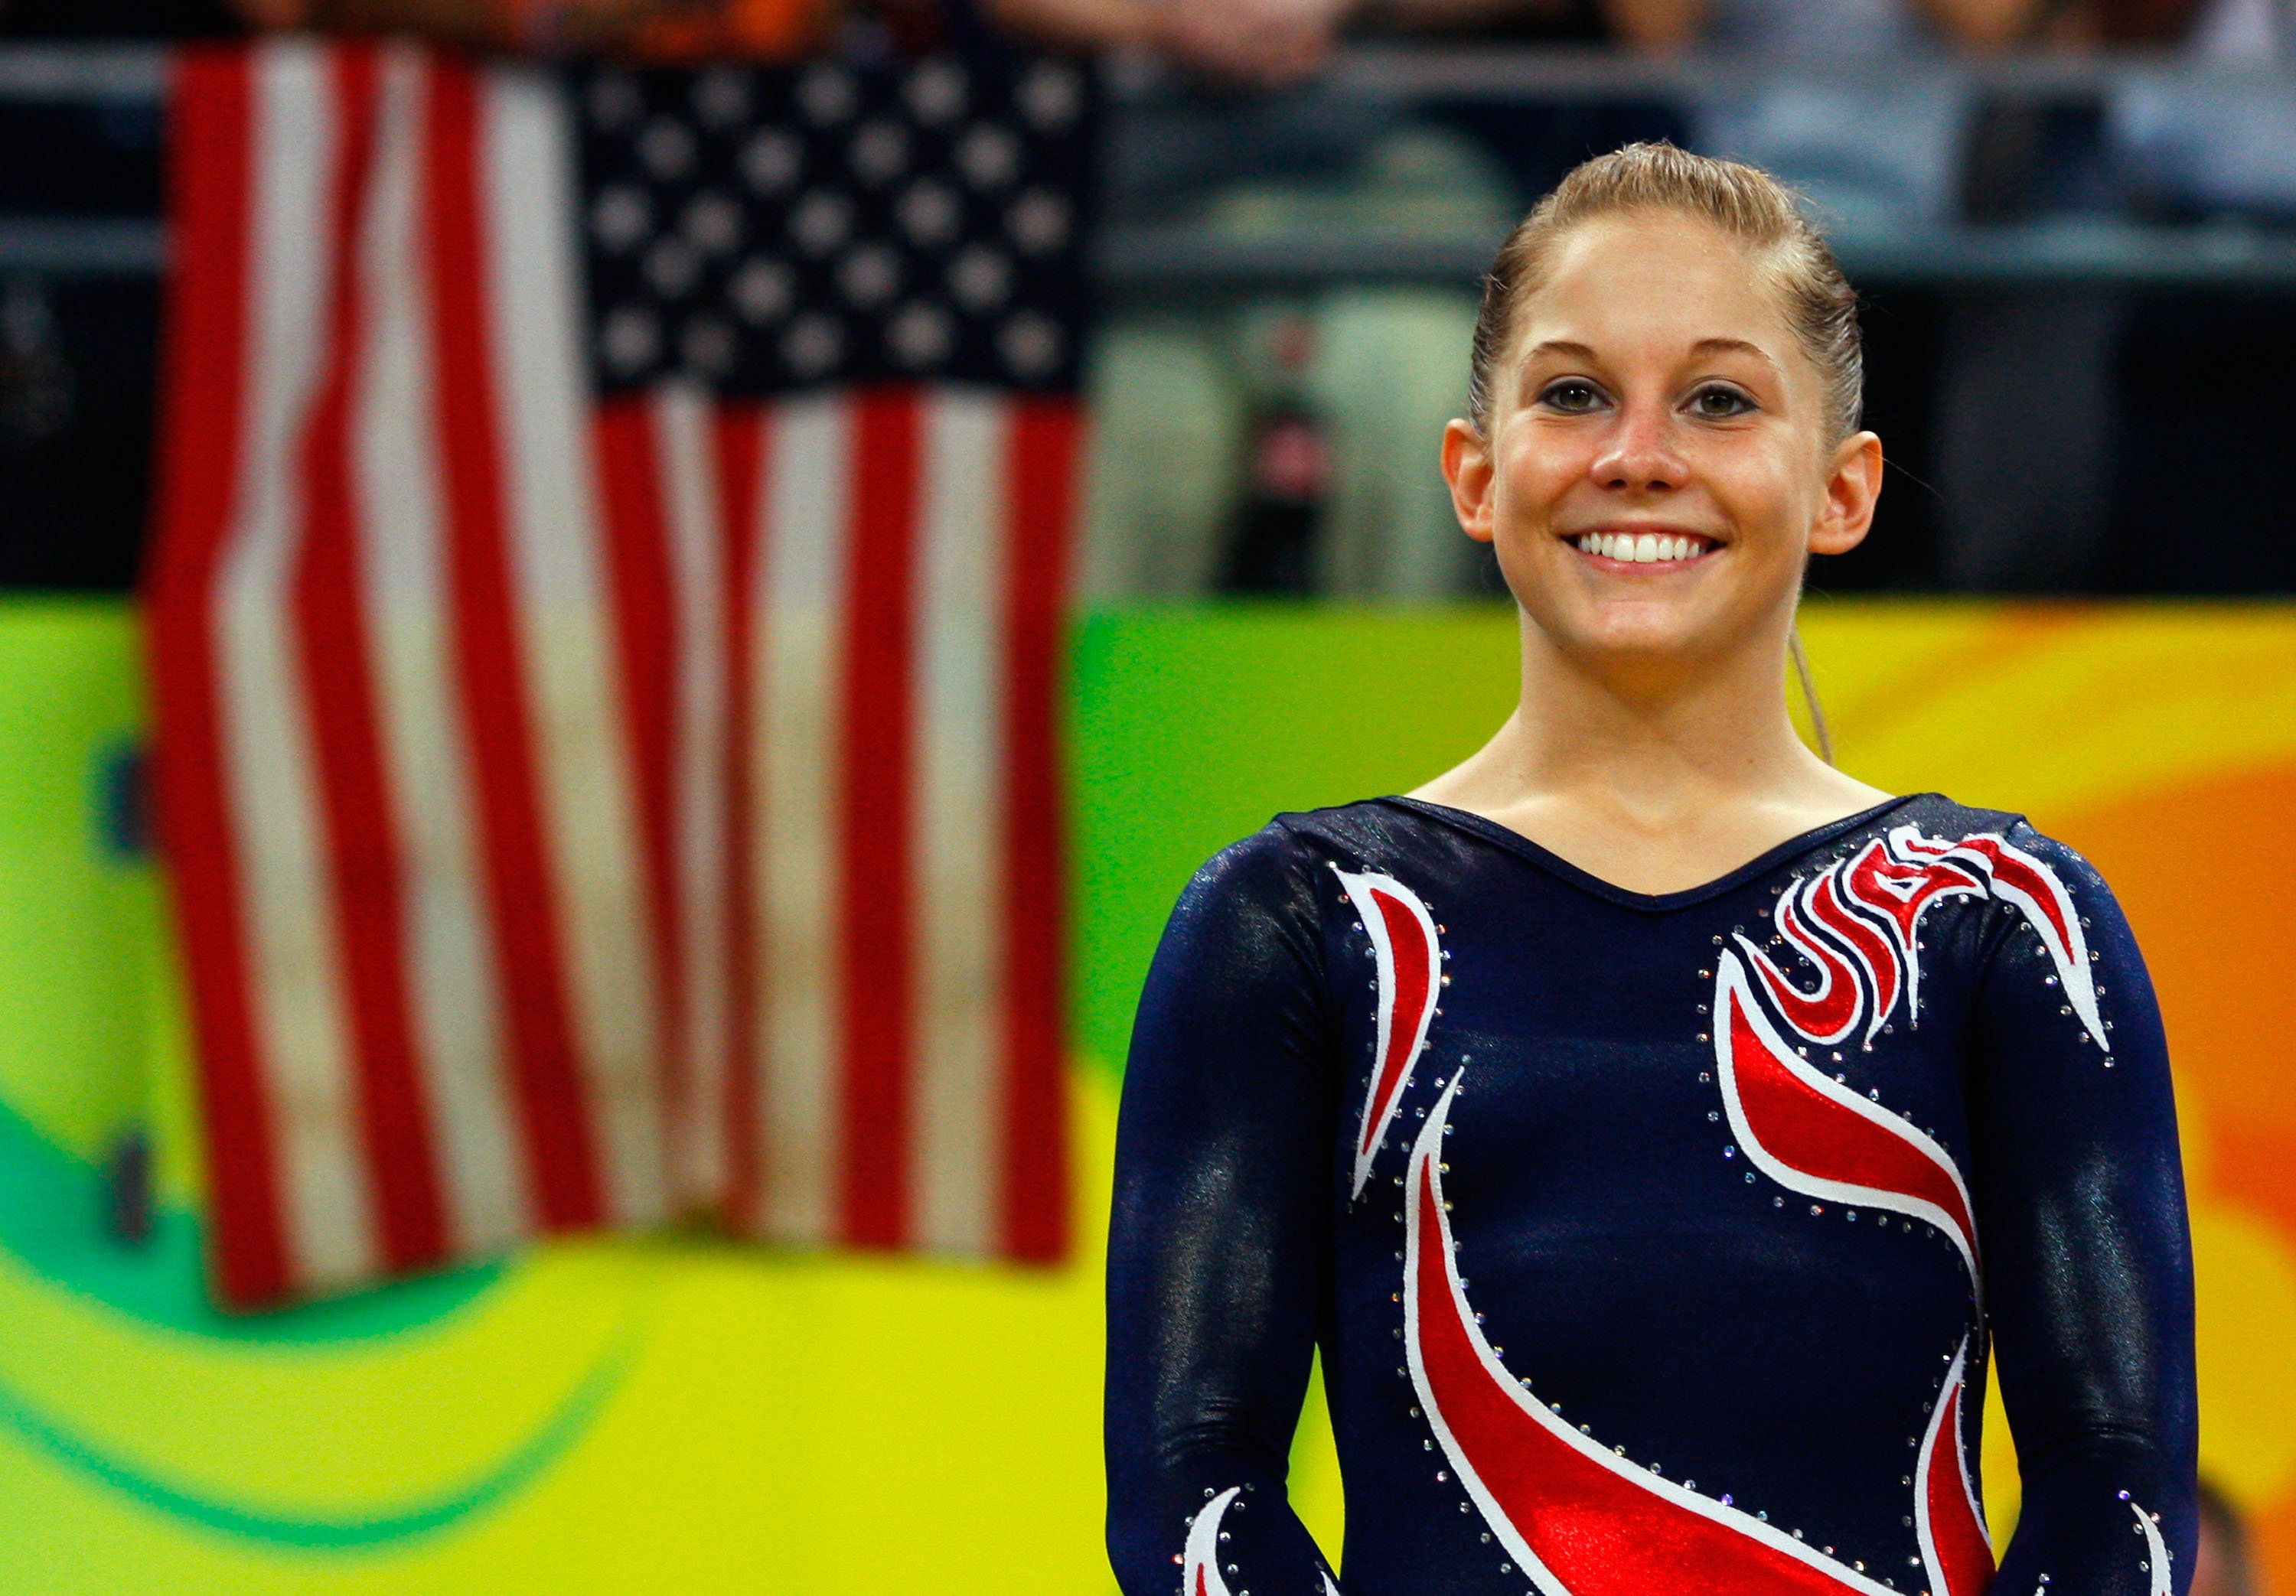 Shawn Johnson Opens Up About Her Miscarriage In Emotional New Video